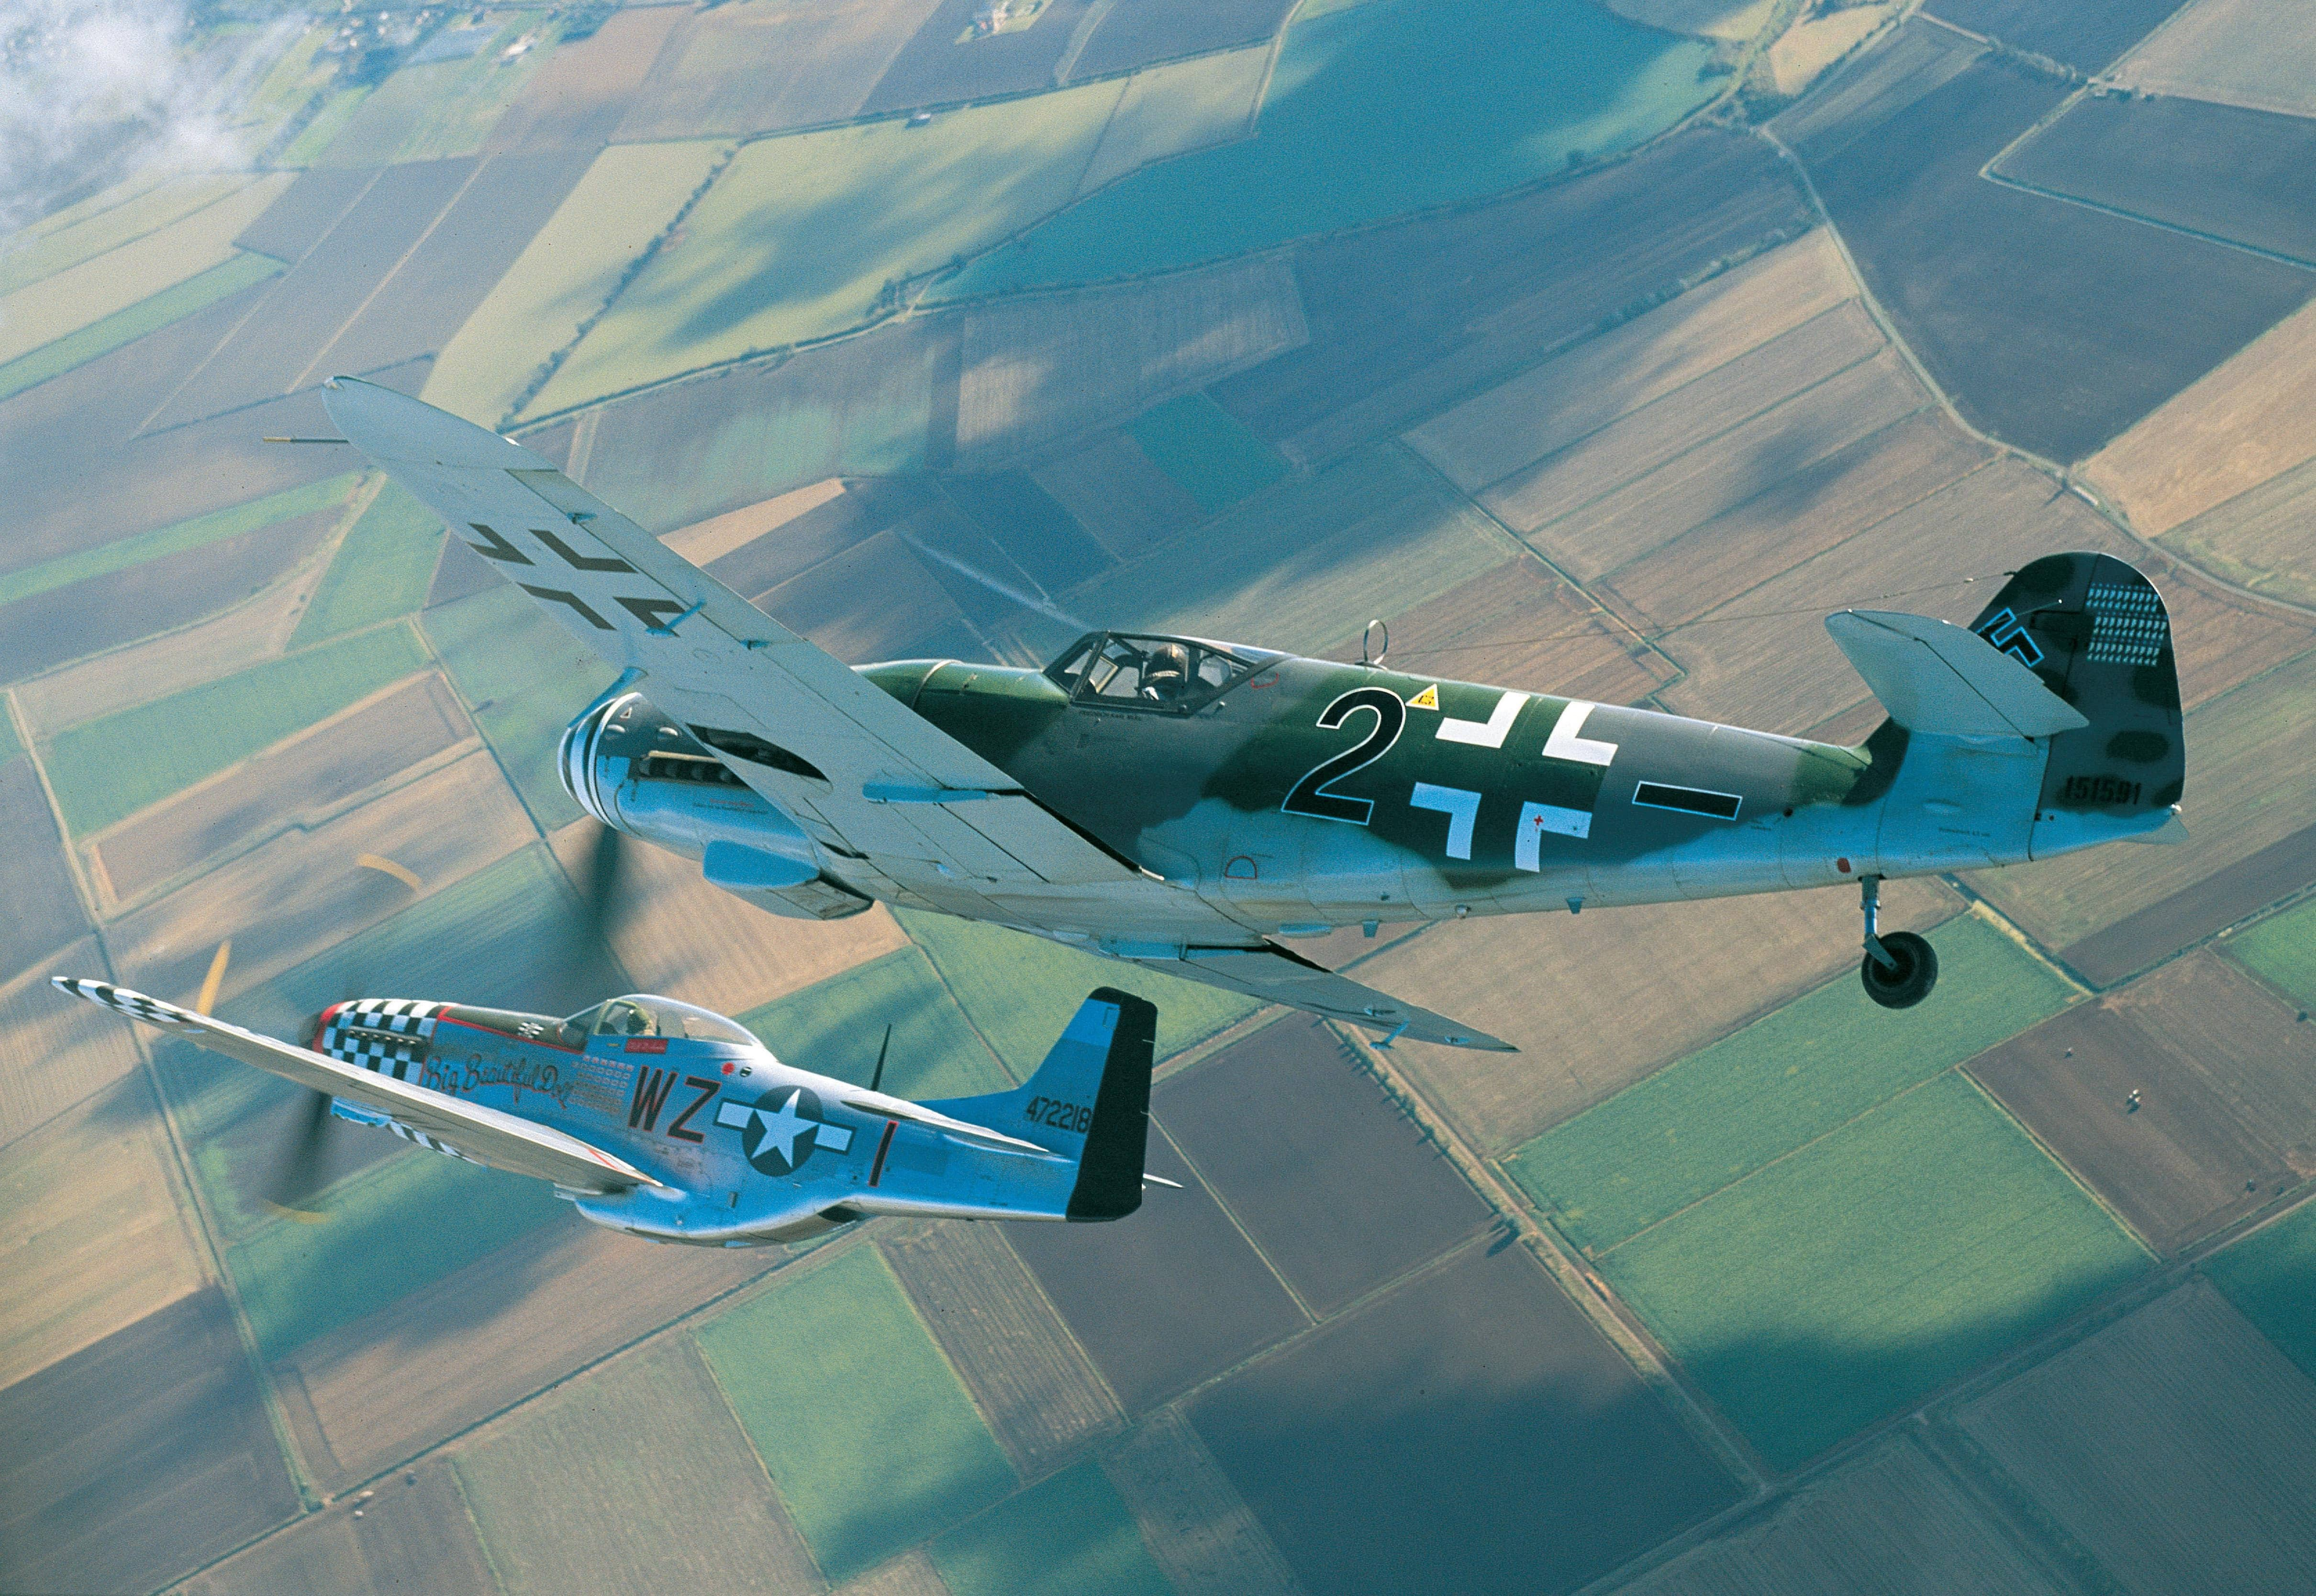 FLYING THE Bf 109: Two pilots give their reports